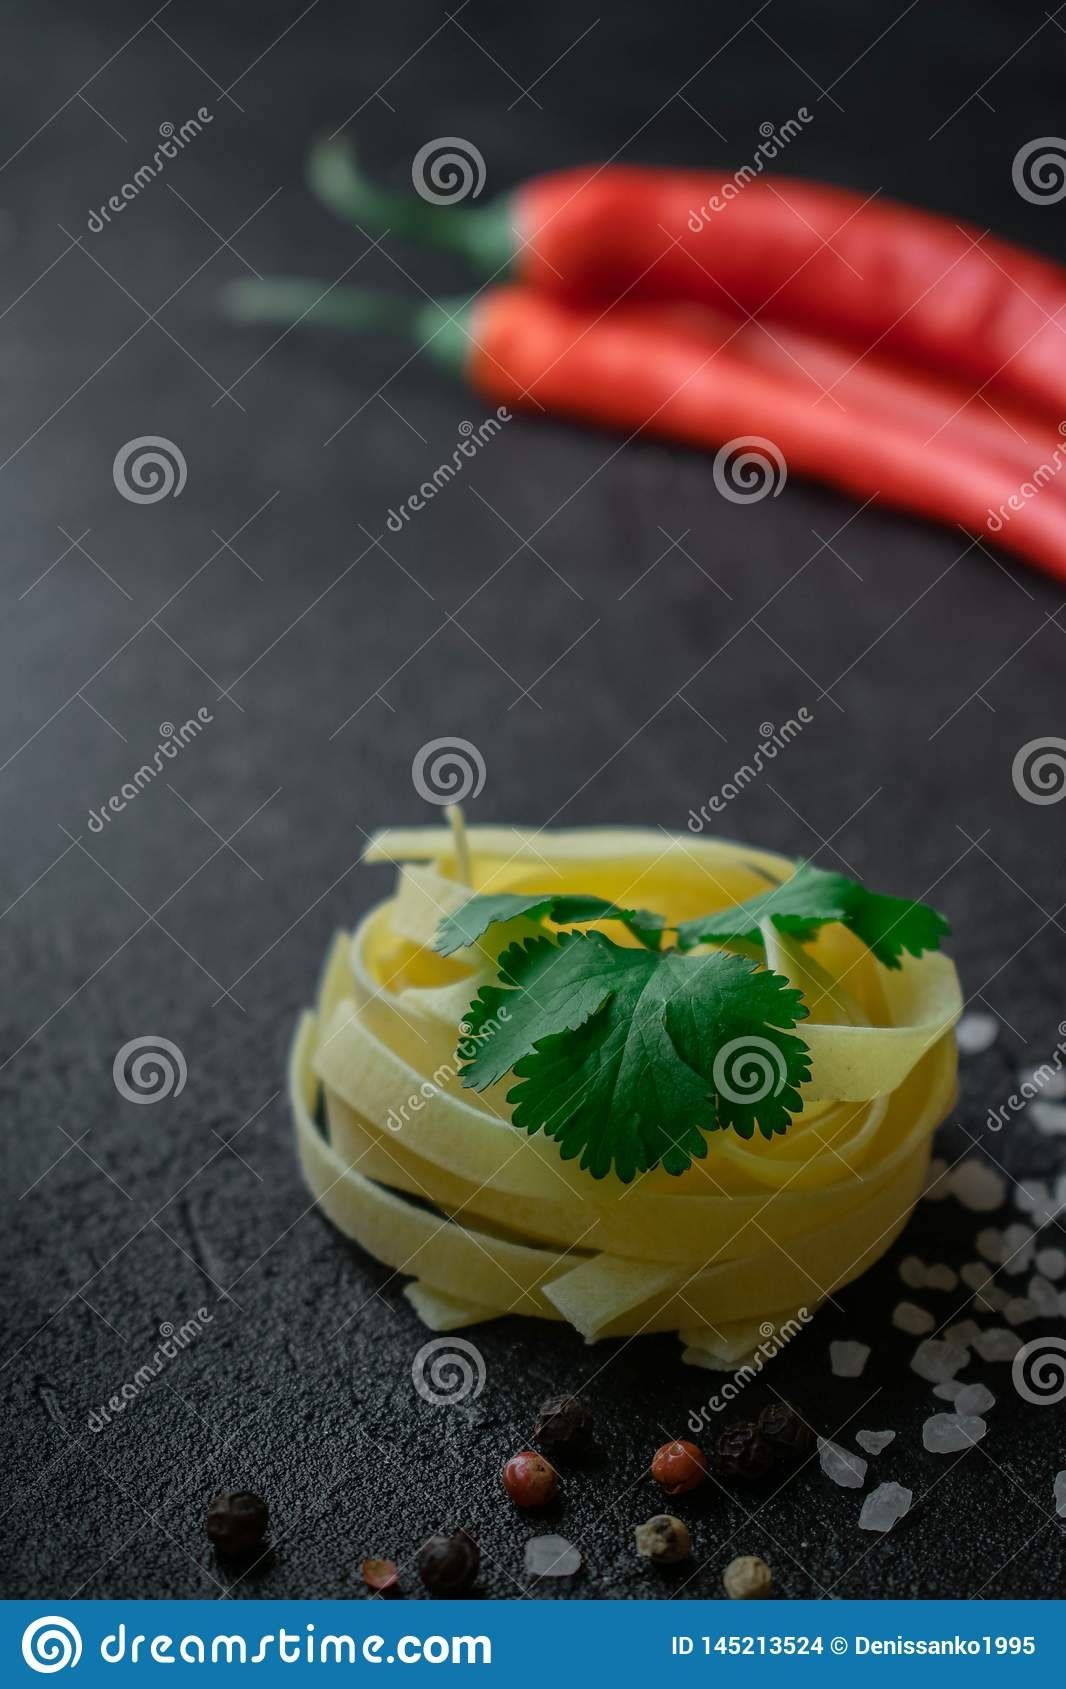 On a dark background raw fettuccine pasta with cilantro leaves, coarse sea salt black and red peppercorns and chili